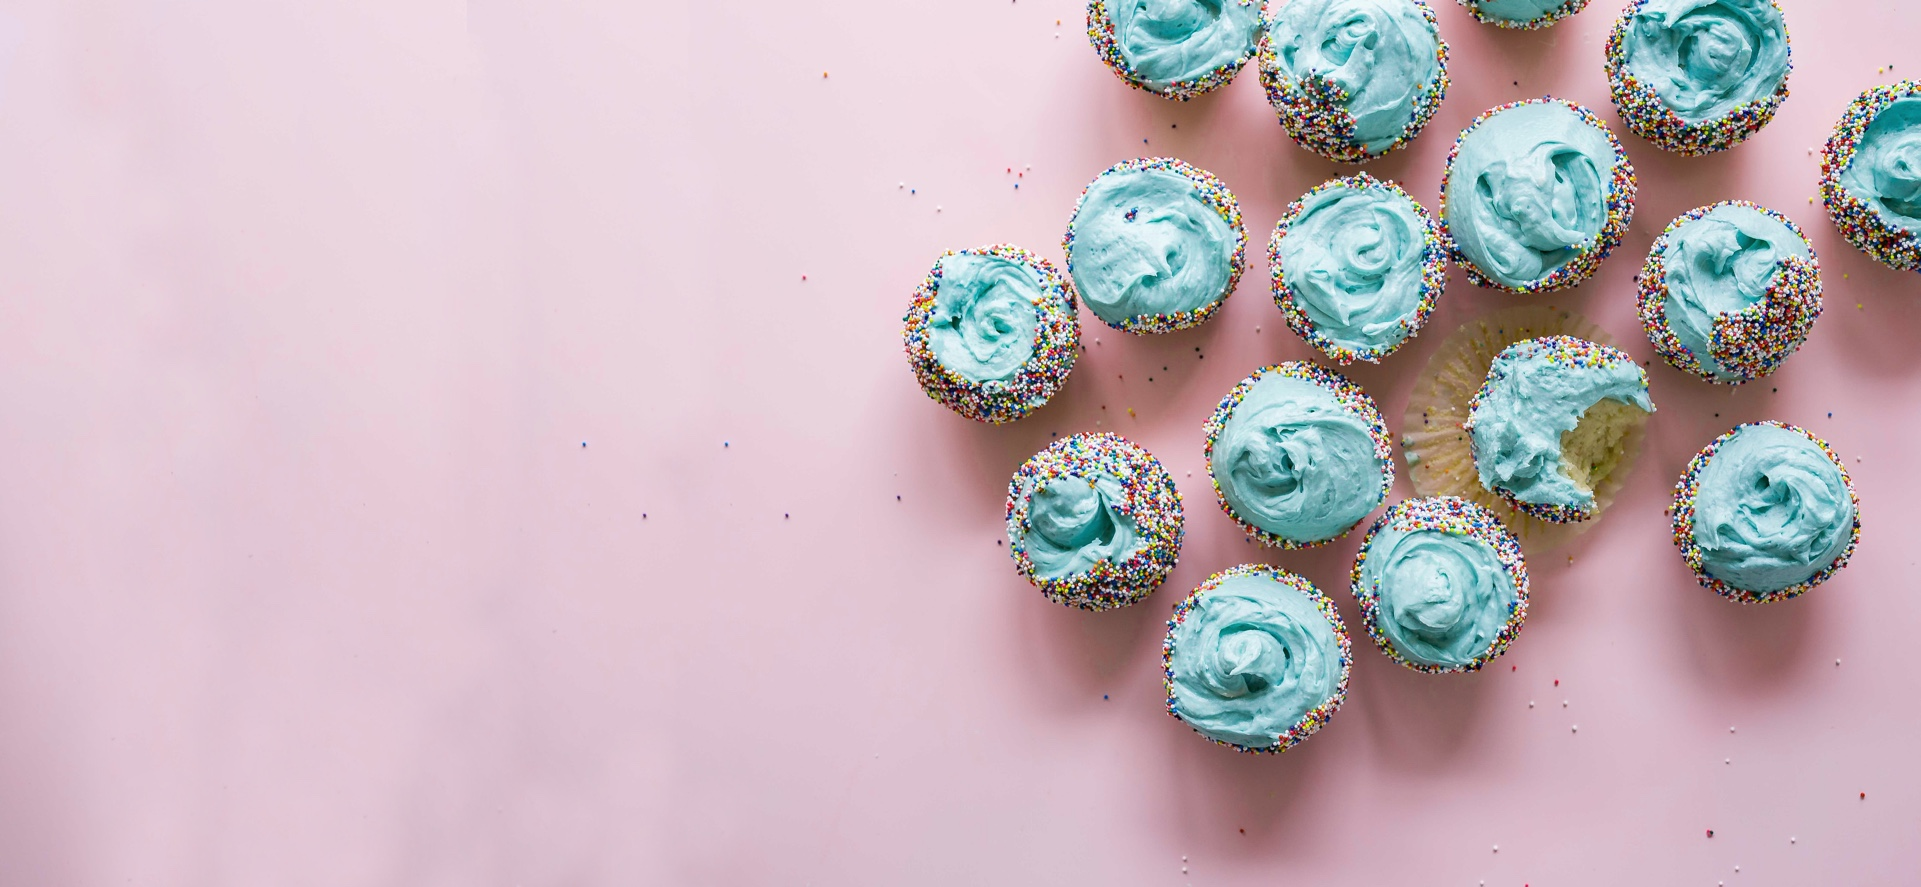 Cupcake for active employee advocates